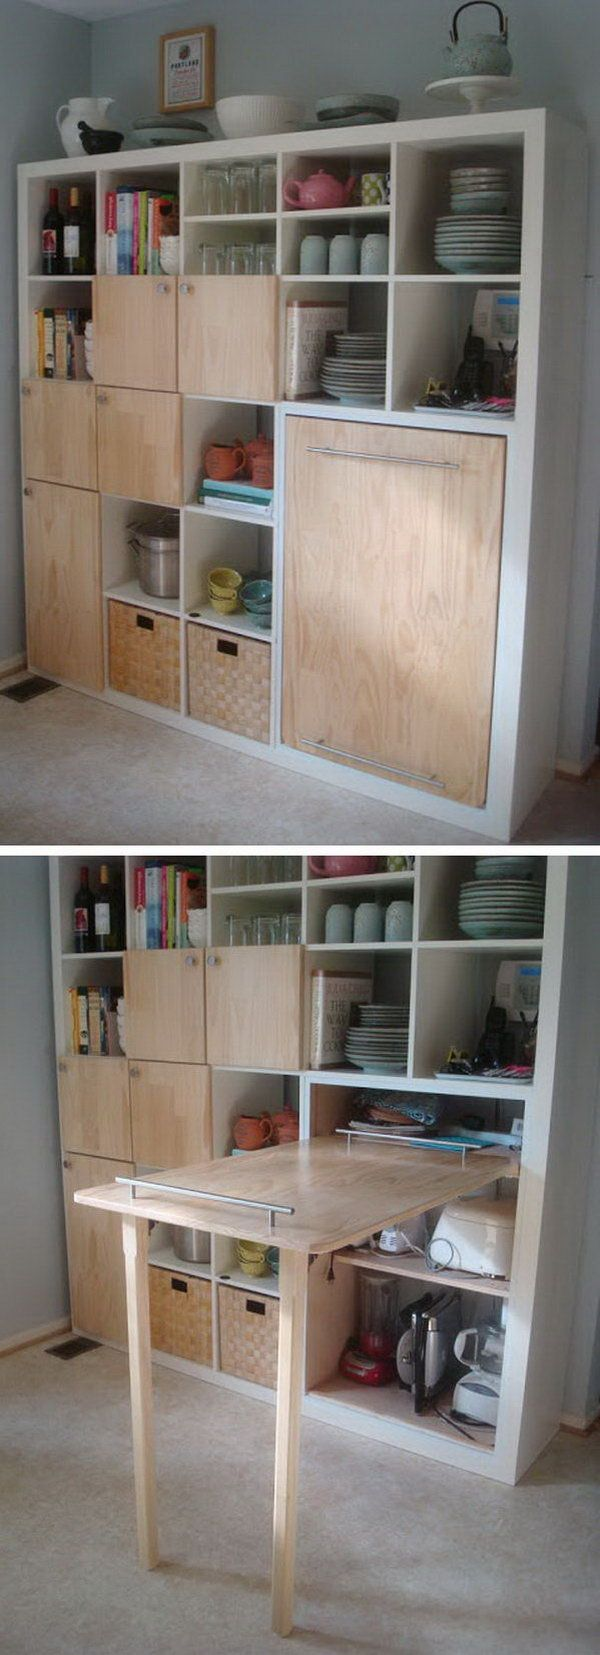 Pull out counter top for kitchen storage, http://hative.com/clever ...